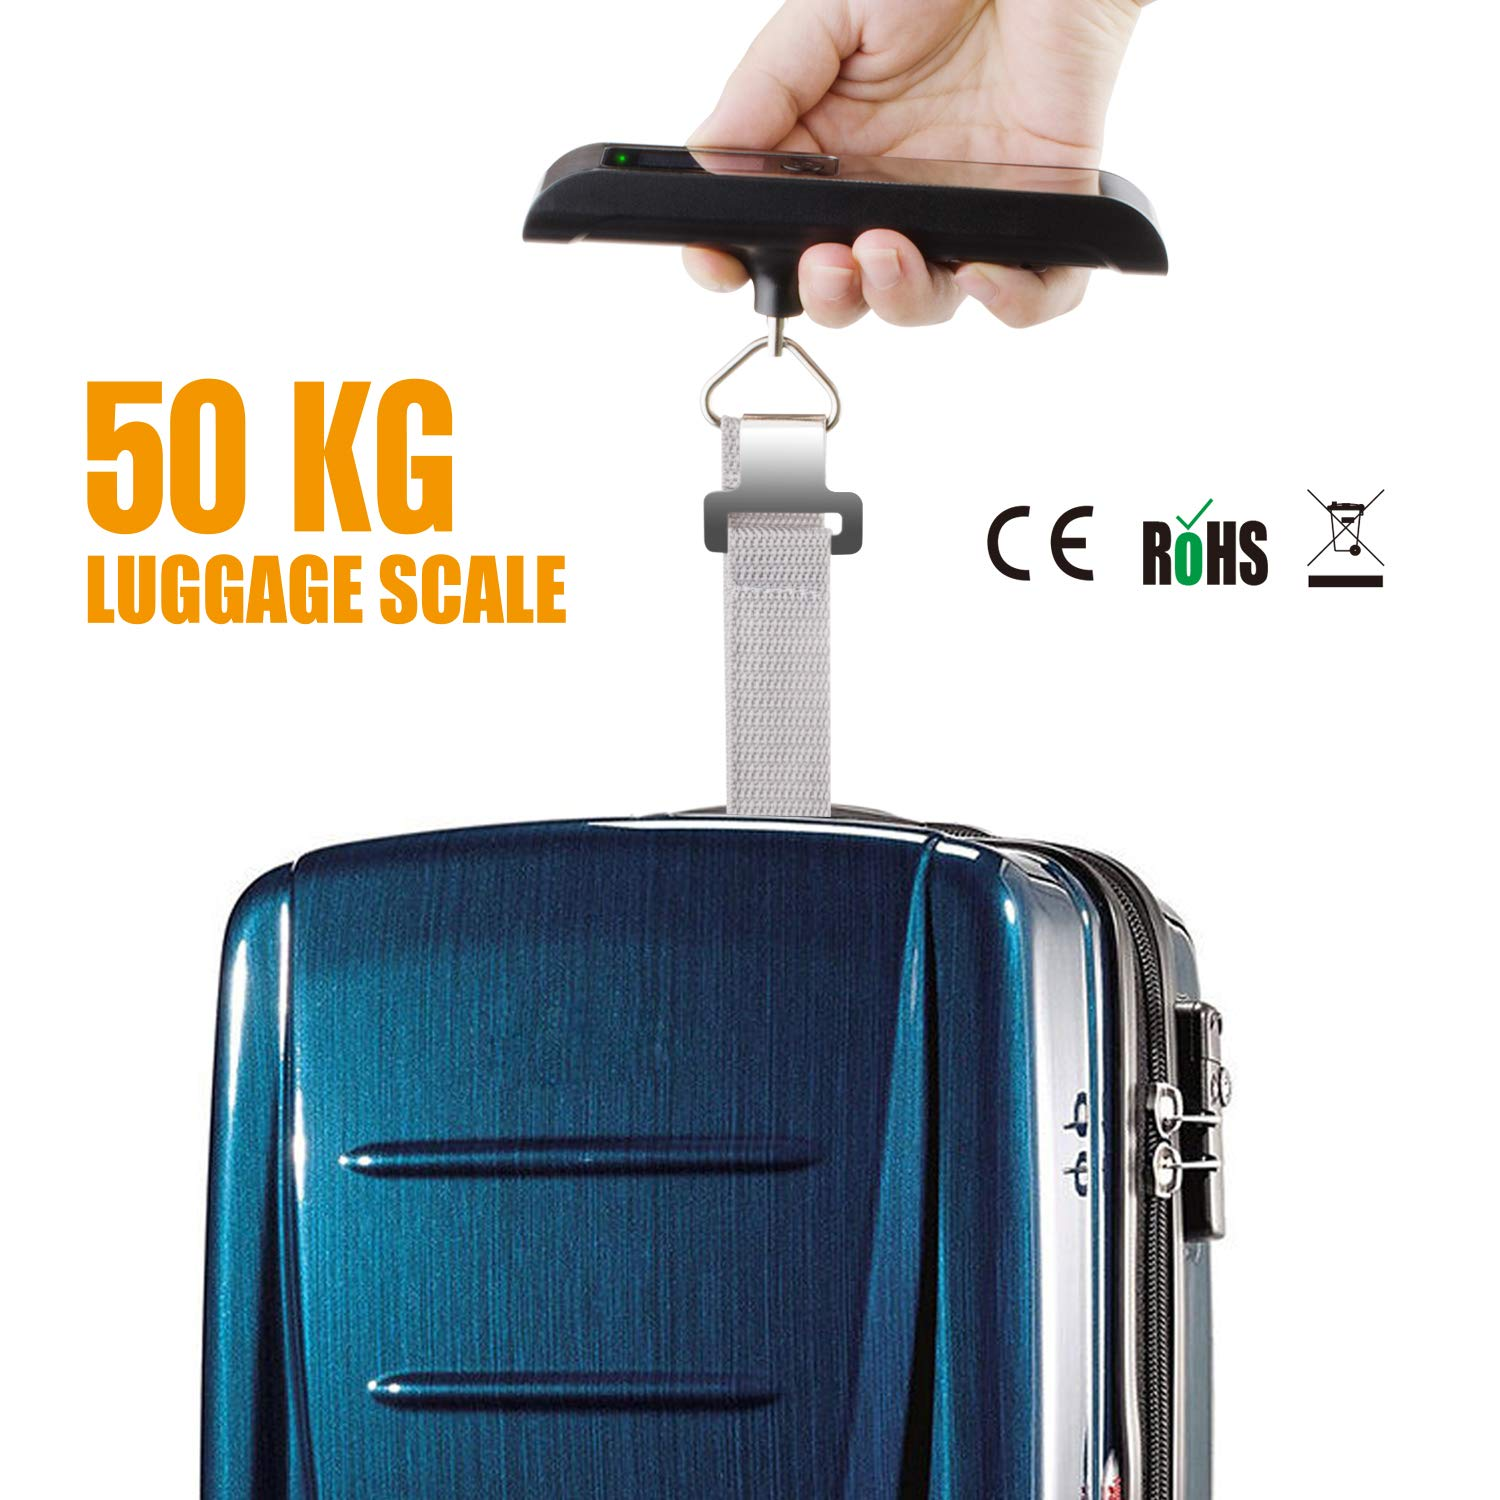 Lifede Luggage Scale,Digital Scale, Manual weight Scale,High Precision,Ultra Portable Scale, Hanging Scale,110lb/50kg,Suitcase Scale for Travel,Household,Outdoor and Gifts,Black by LIFEDE (Image #5)